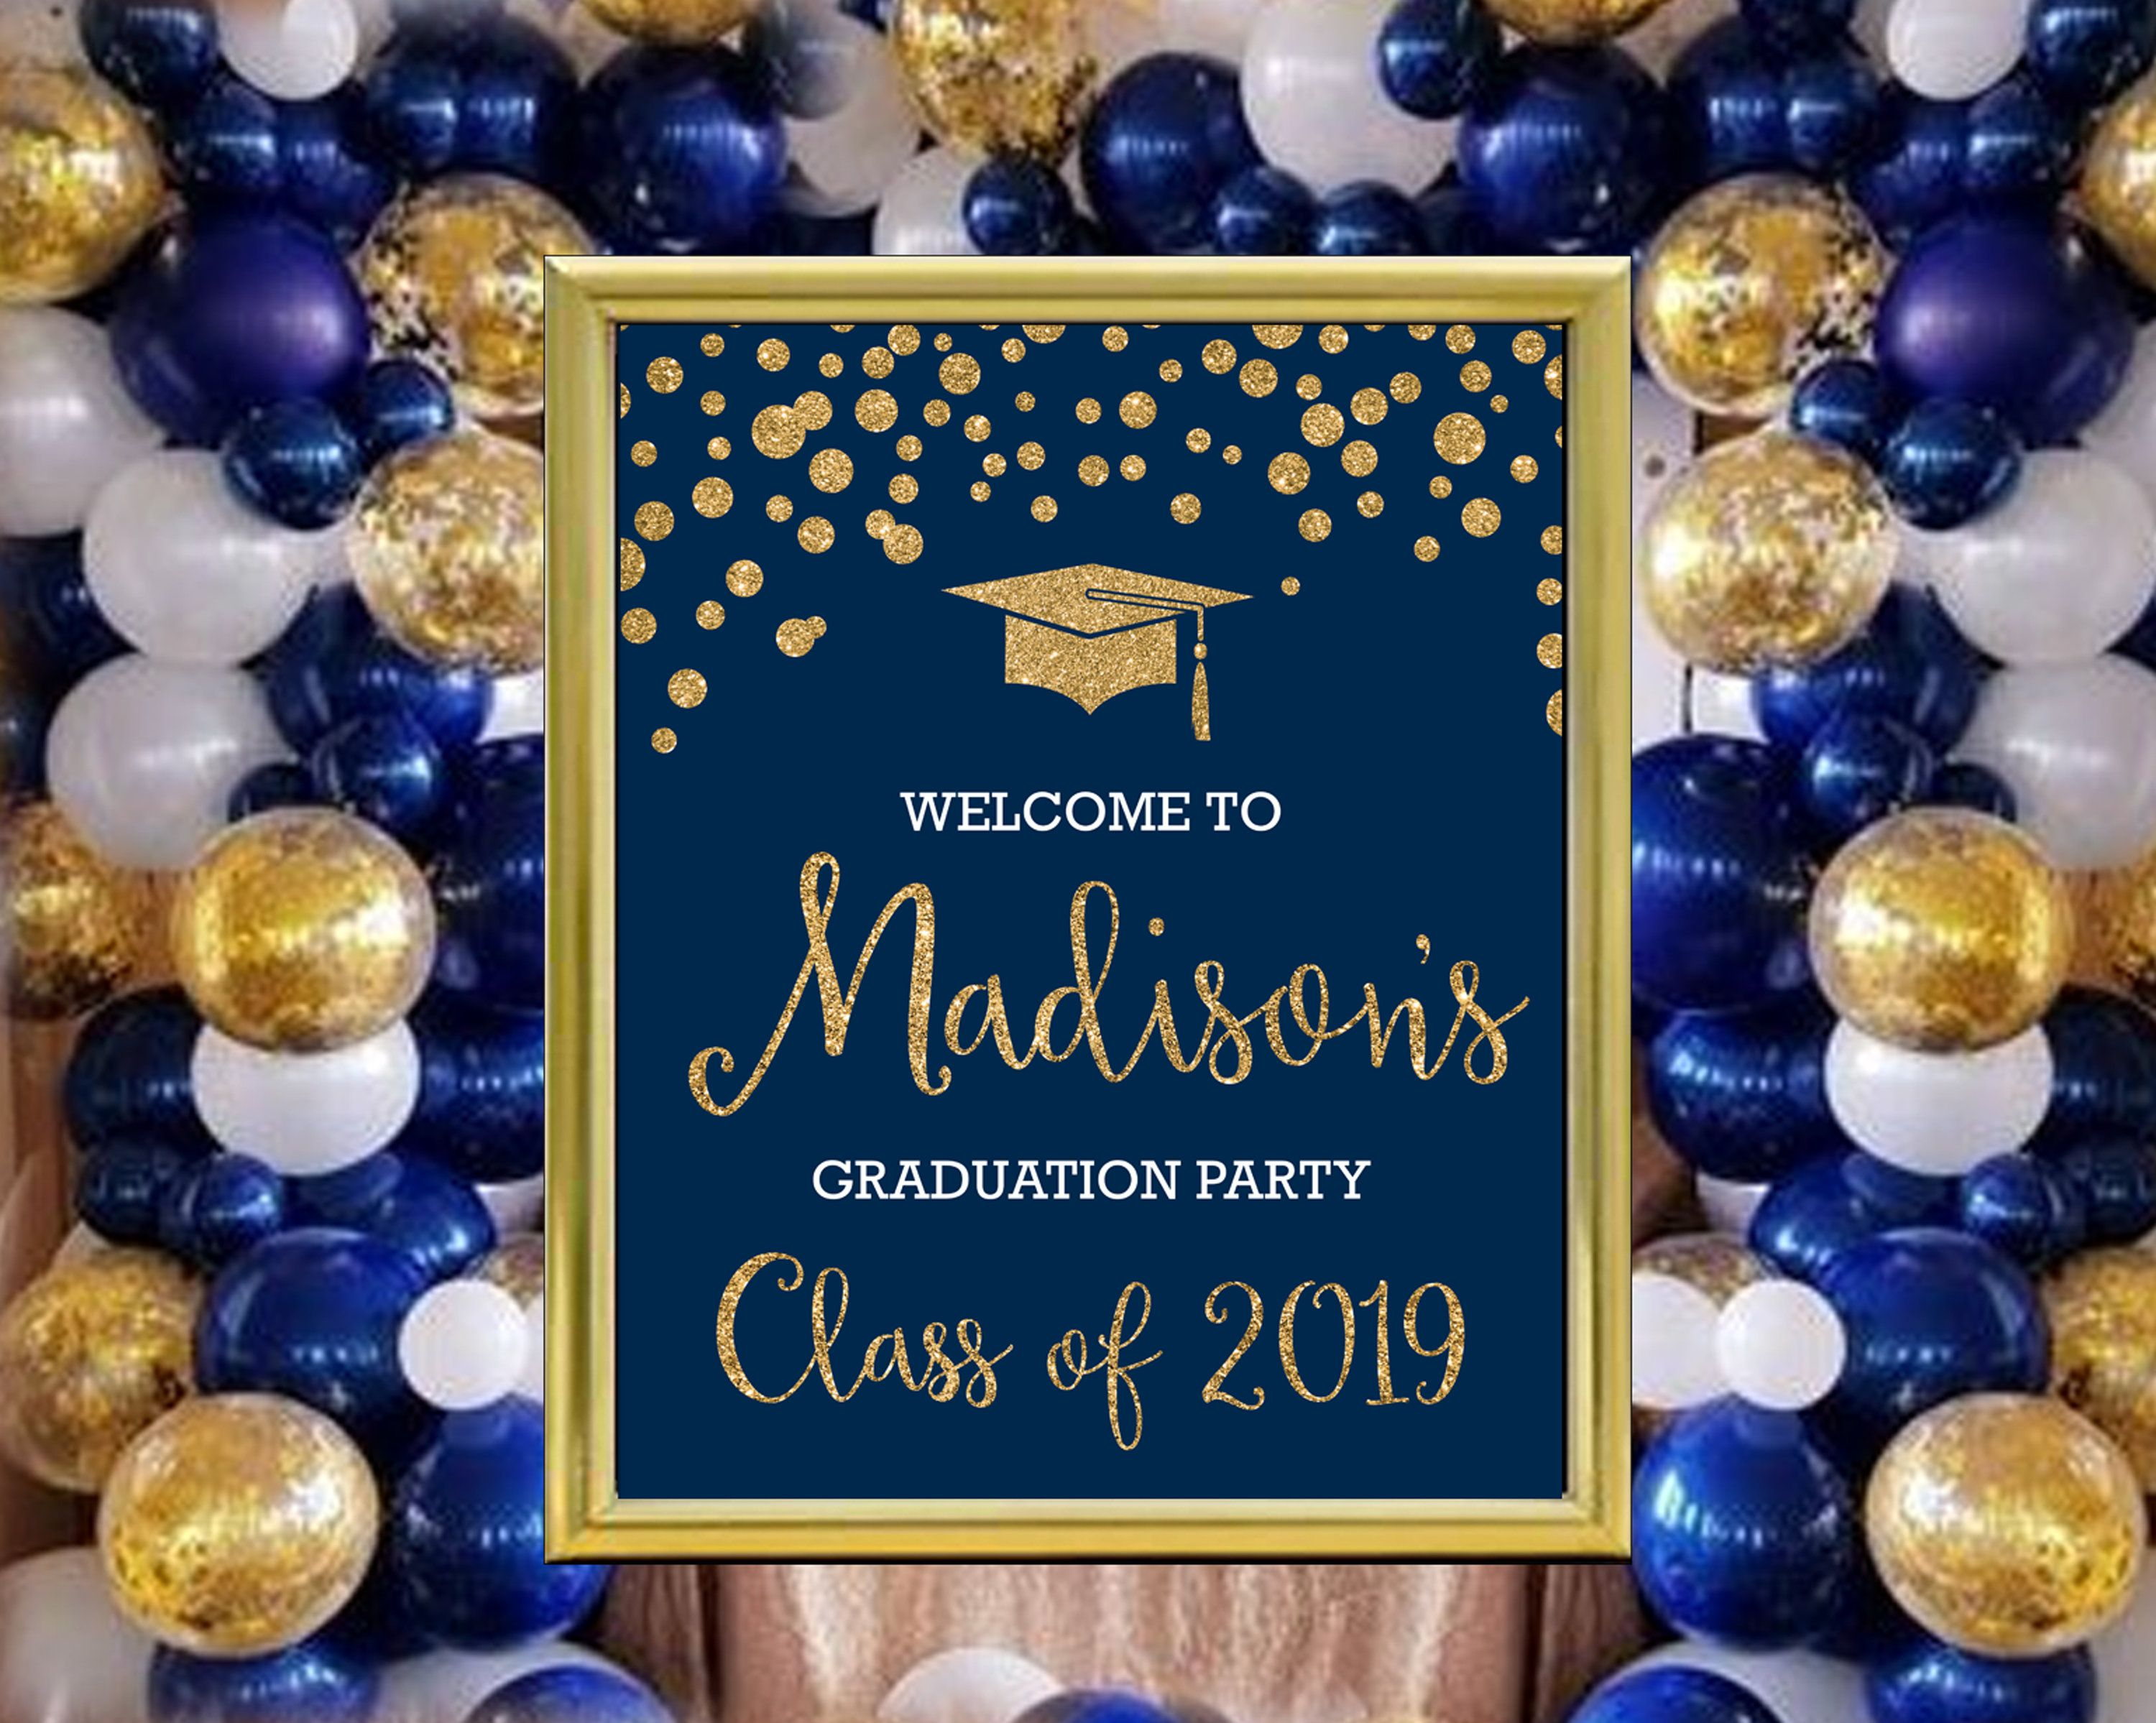 Personalized Graduation Welcome Poster Navy Blue And Gold Or Silver Glitter Printable Party Poster With Images Gold Graduation Party Blue Graduation Party Graduation Party Decor